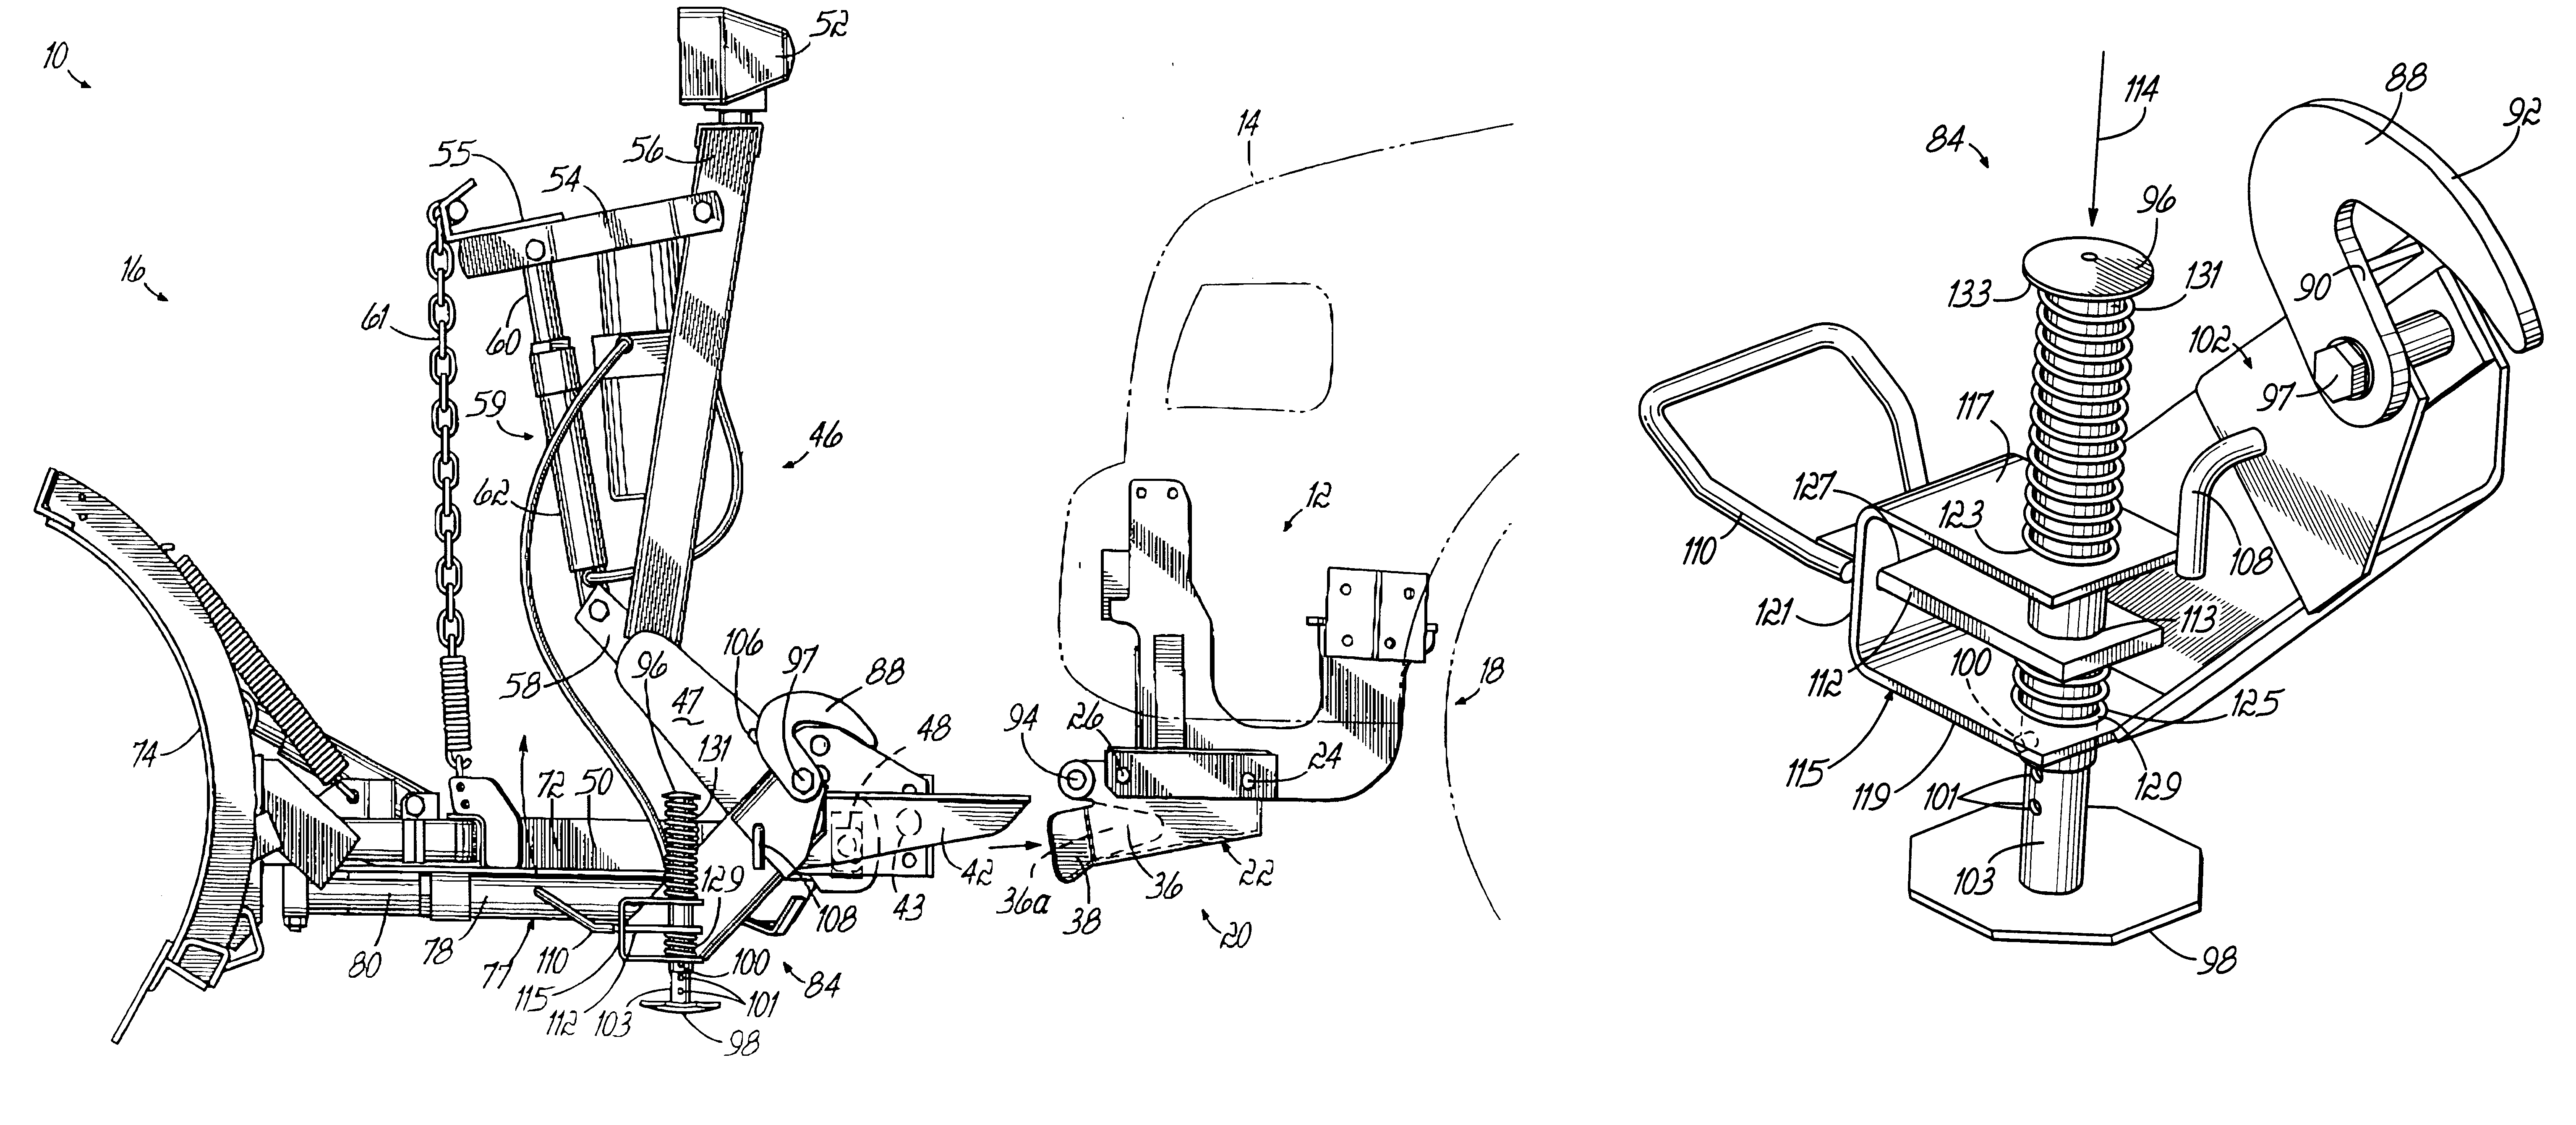 patent us snowplow mounting assembly patents patent drawing